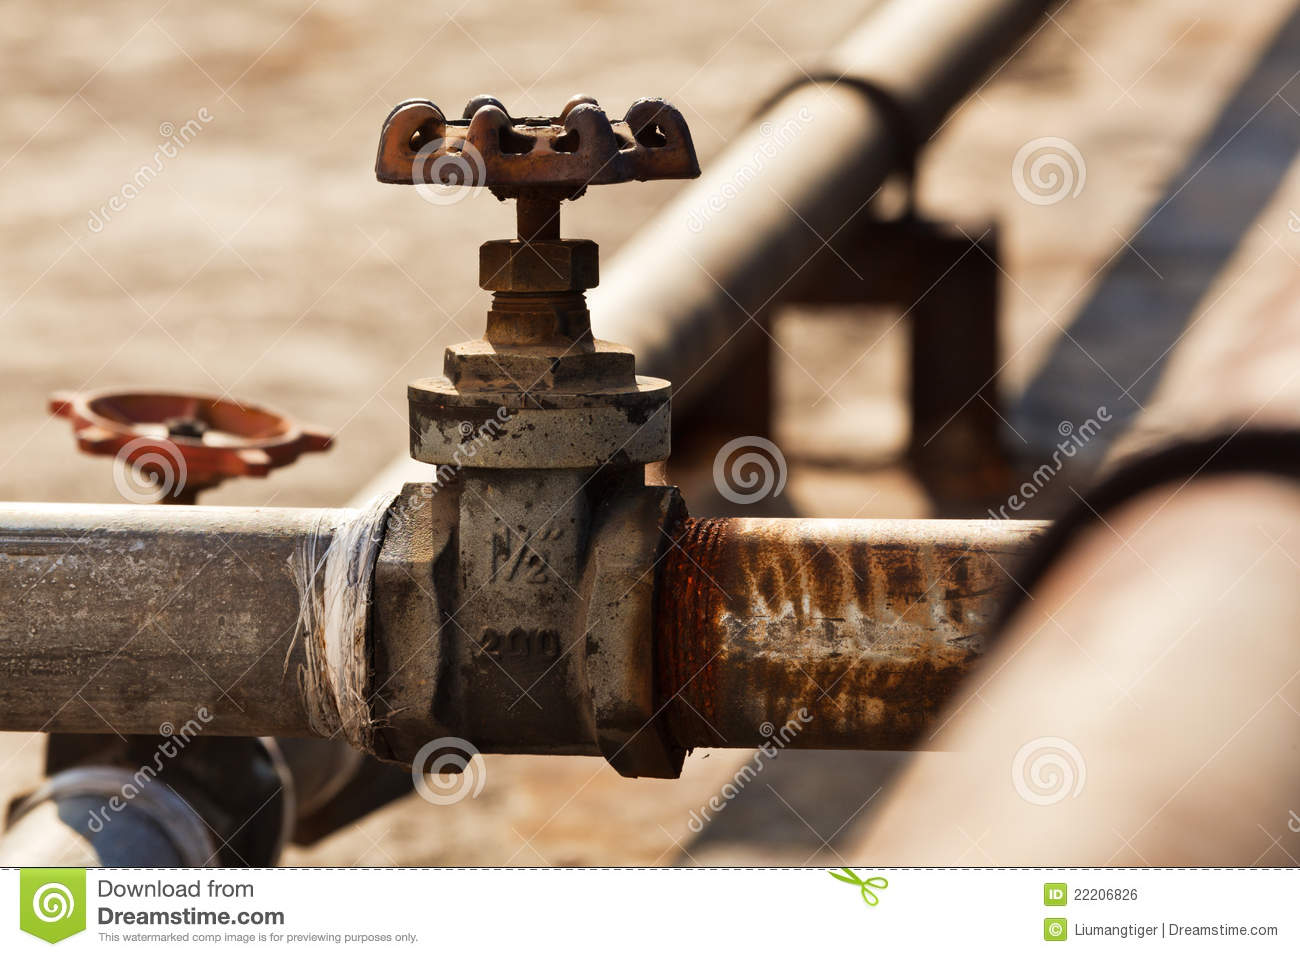 Old taps and pipes stock photo. Image of rusted, faucet - 22206826